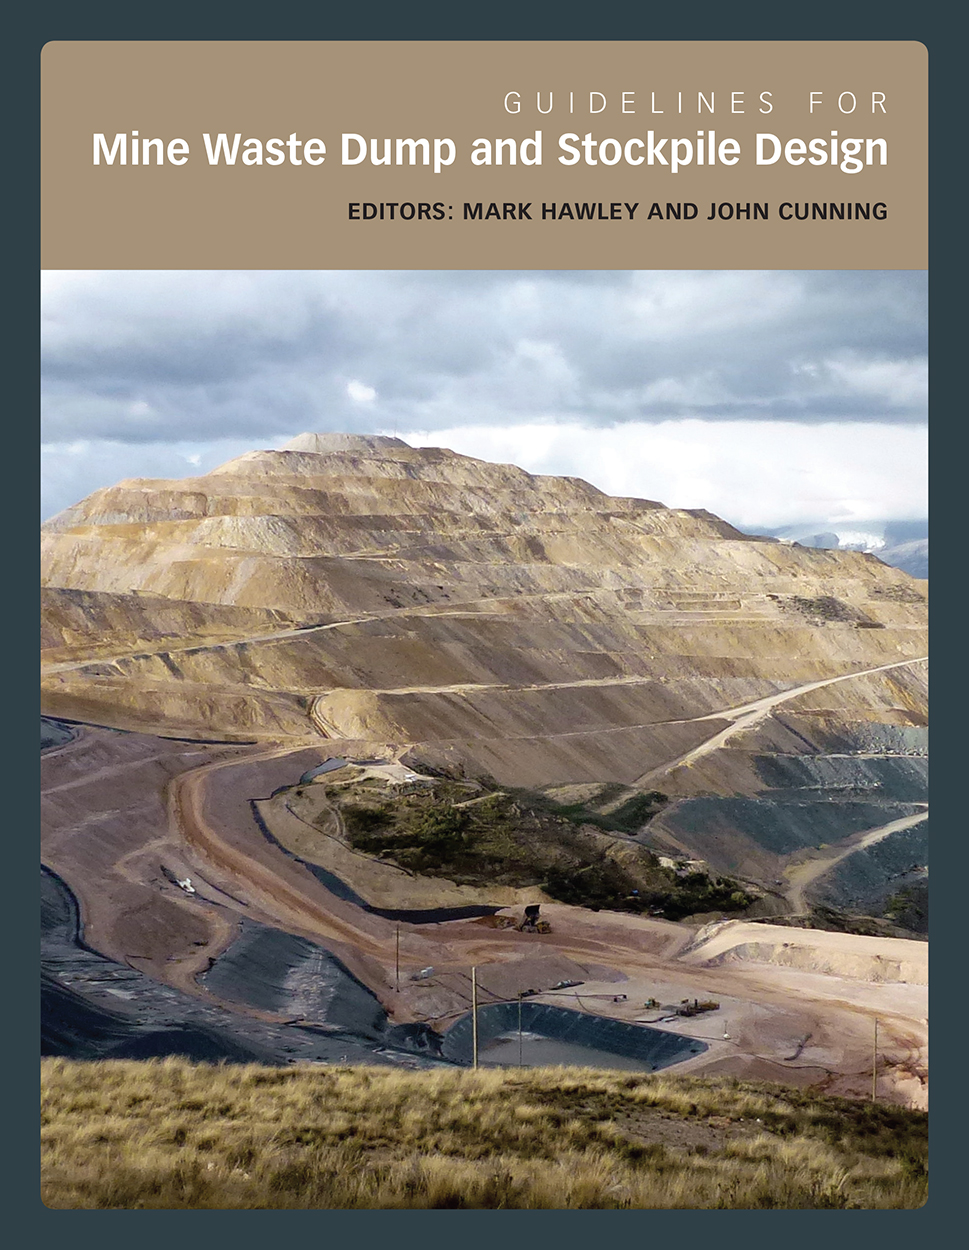 Cover featuring an image of a pyramid-shaped mine waste dump.